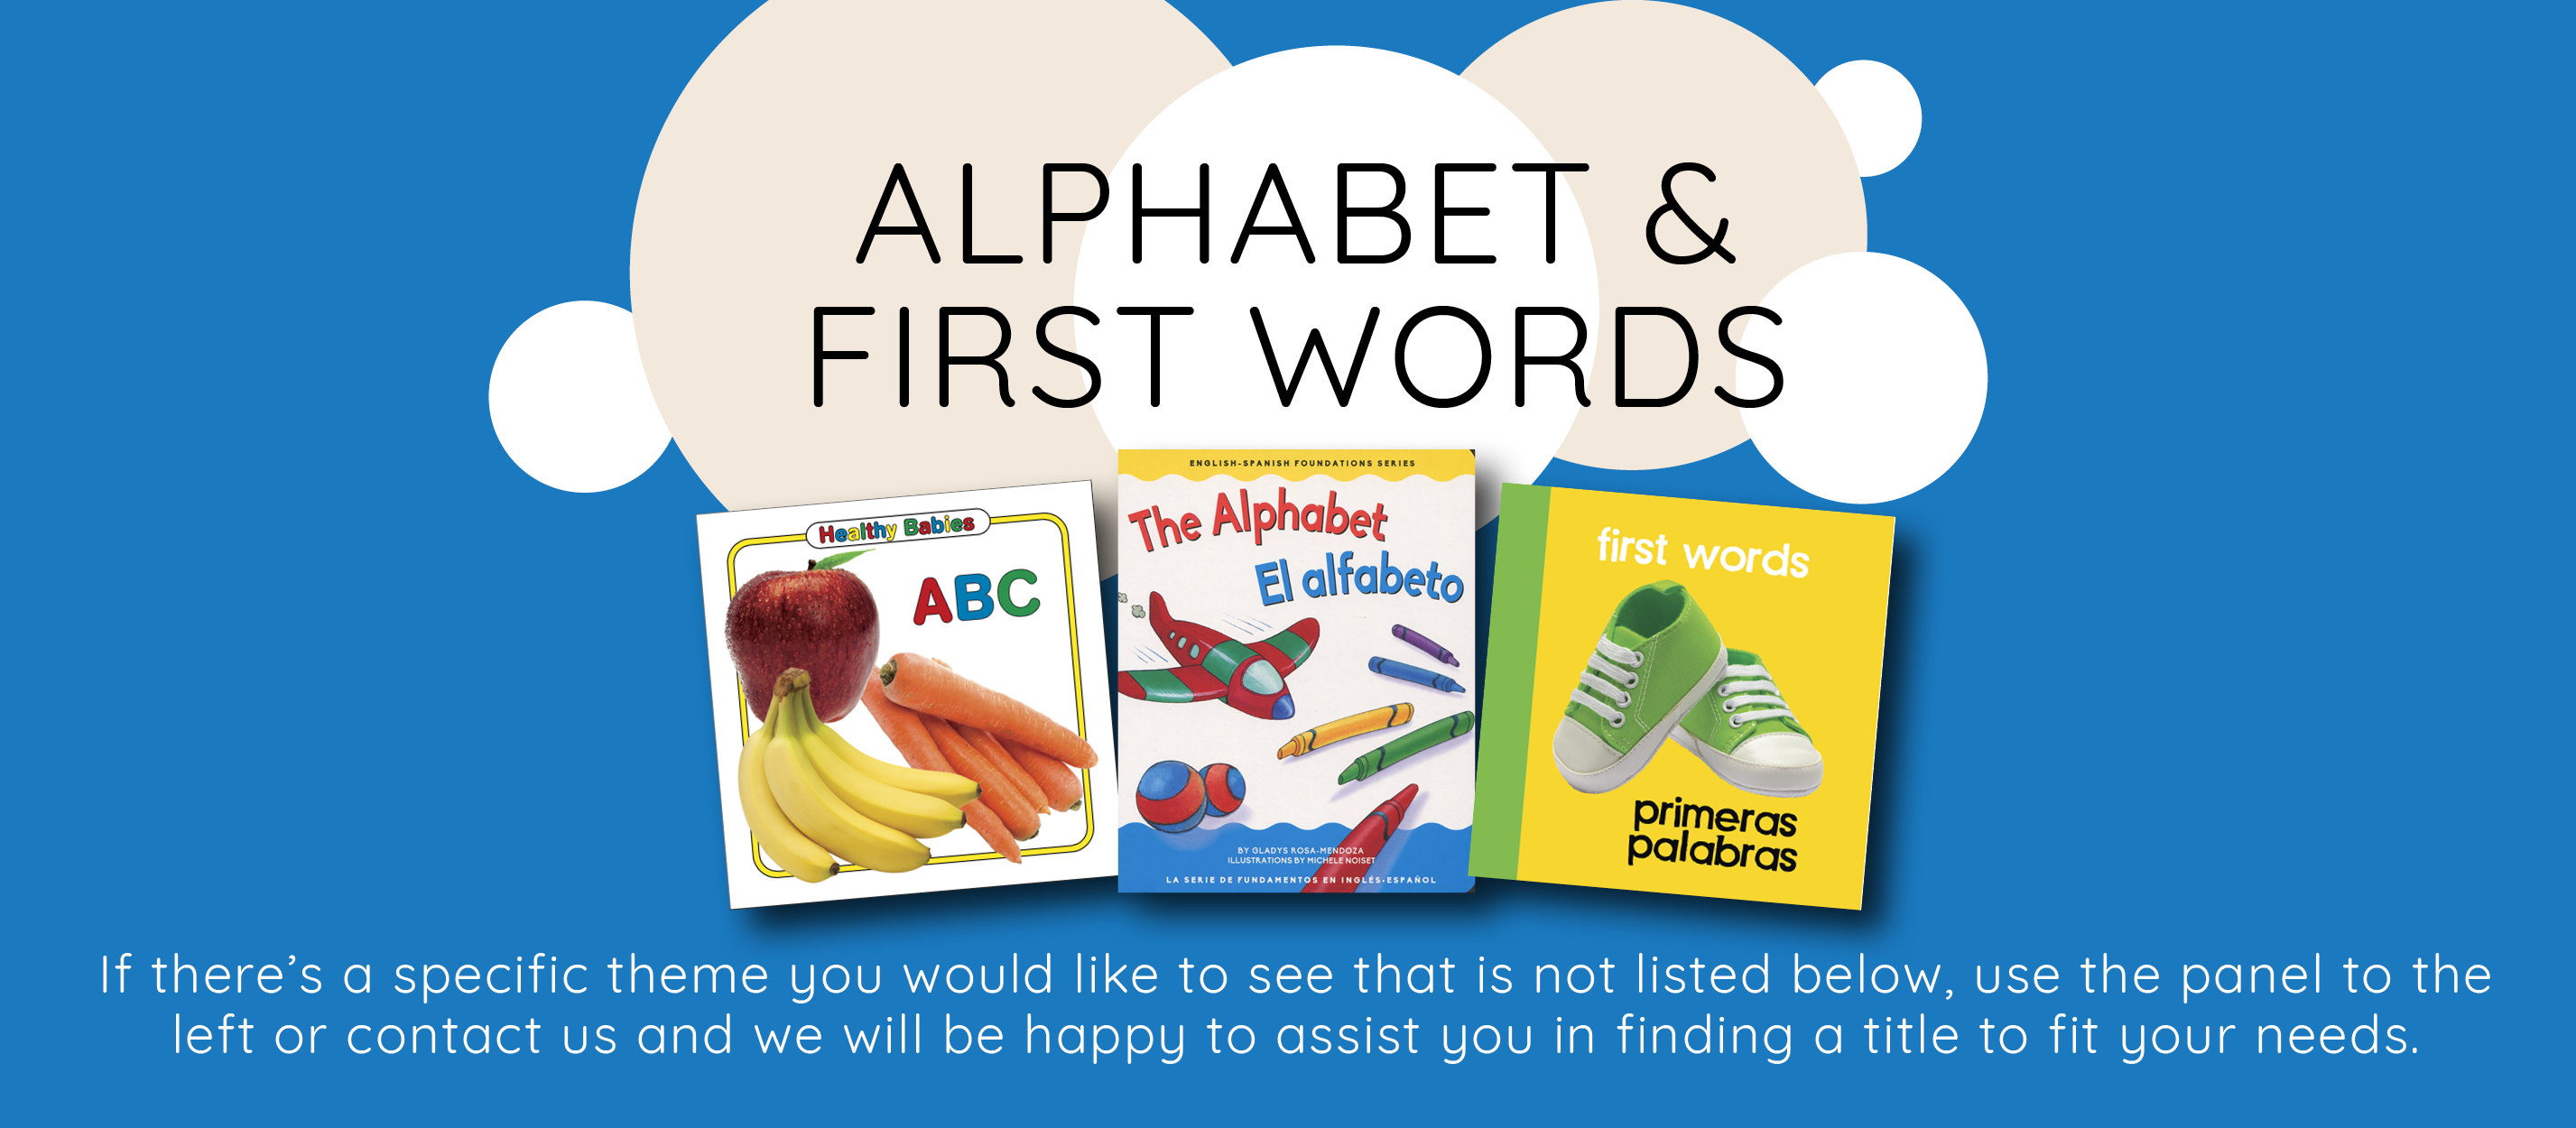 Alphabet & First Words